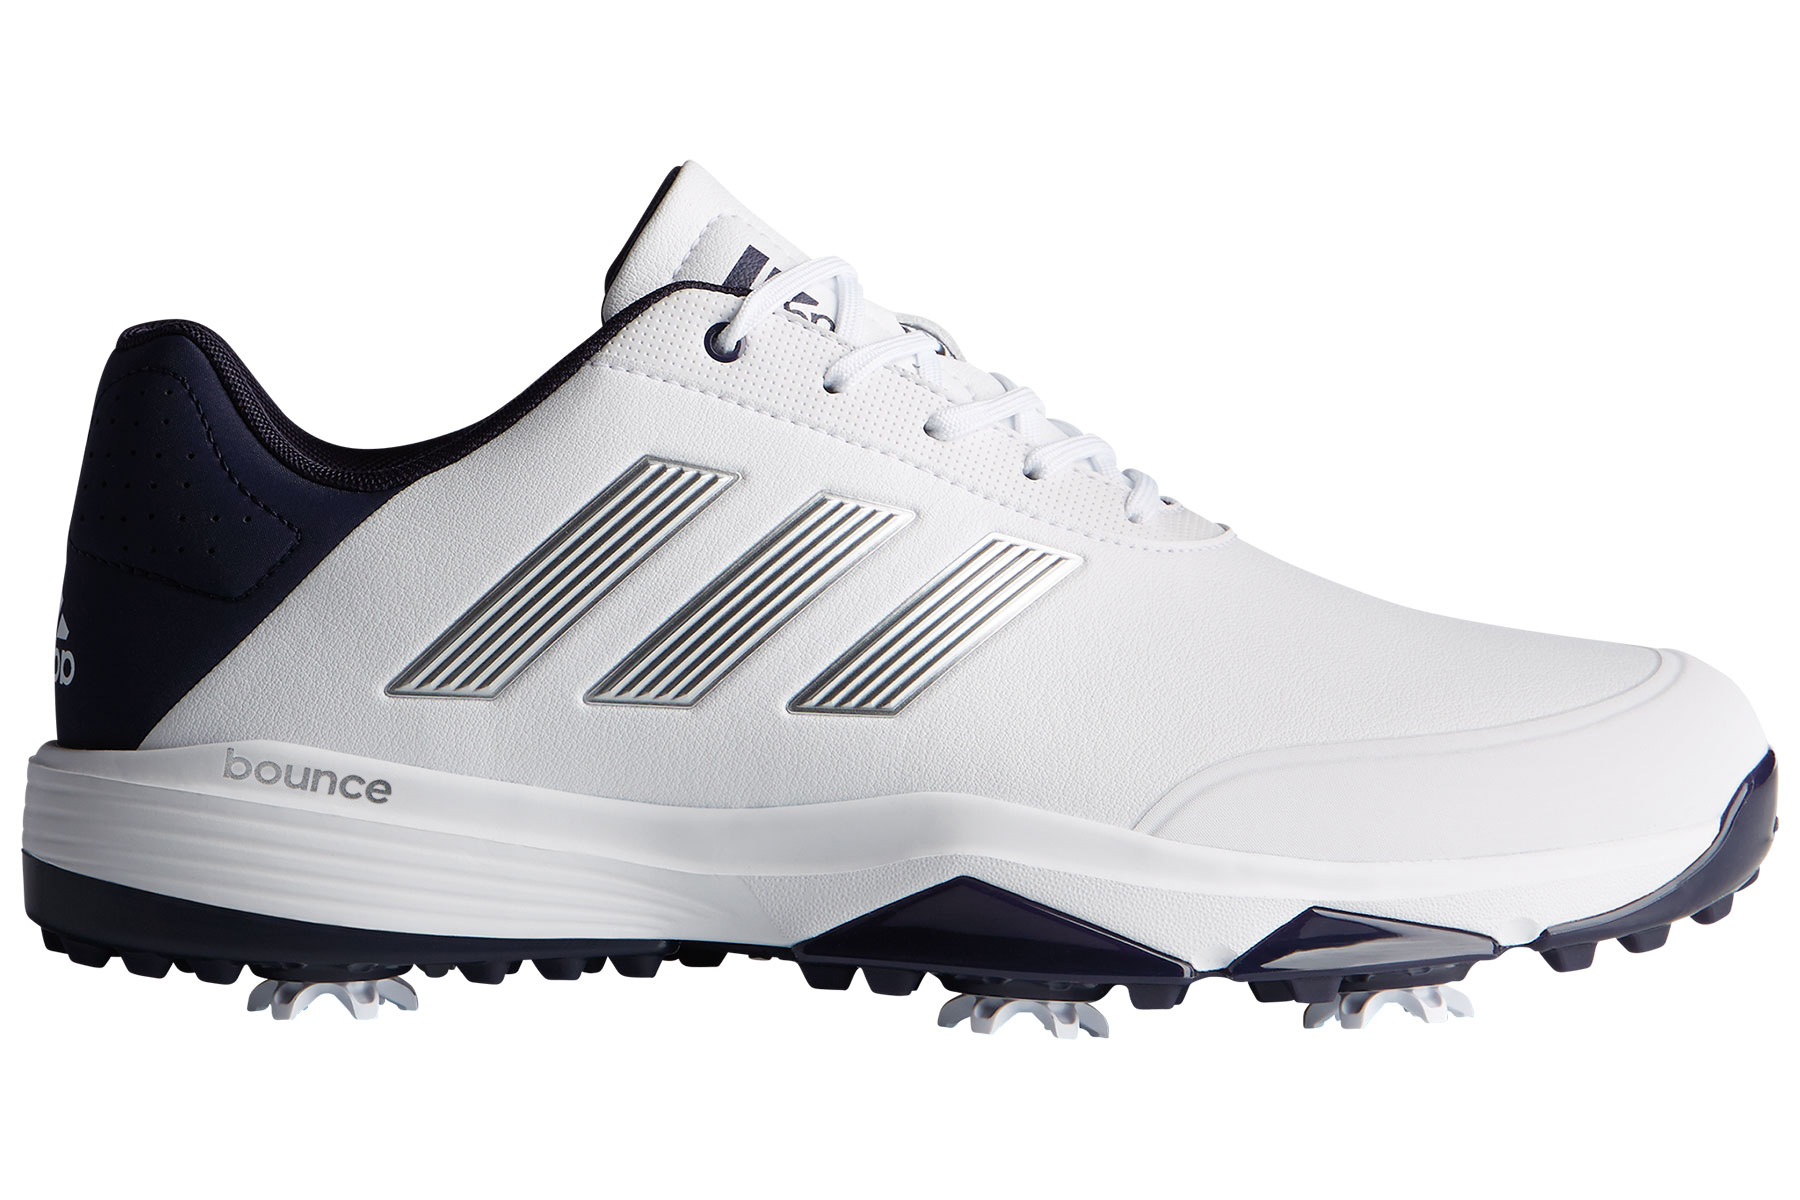 Adidas Golf Shoes Clearance Uk